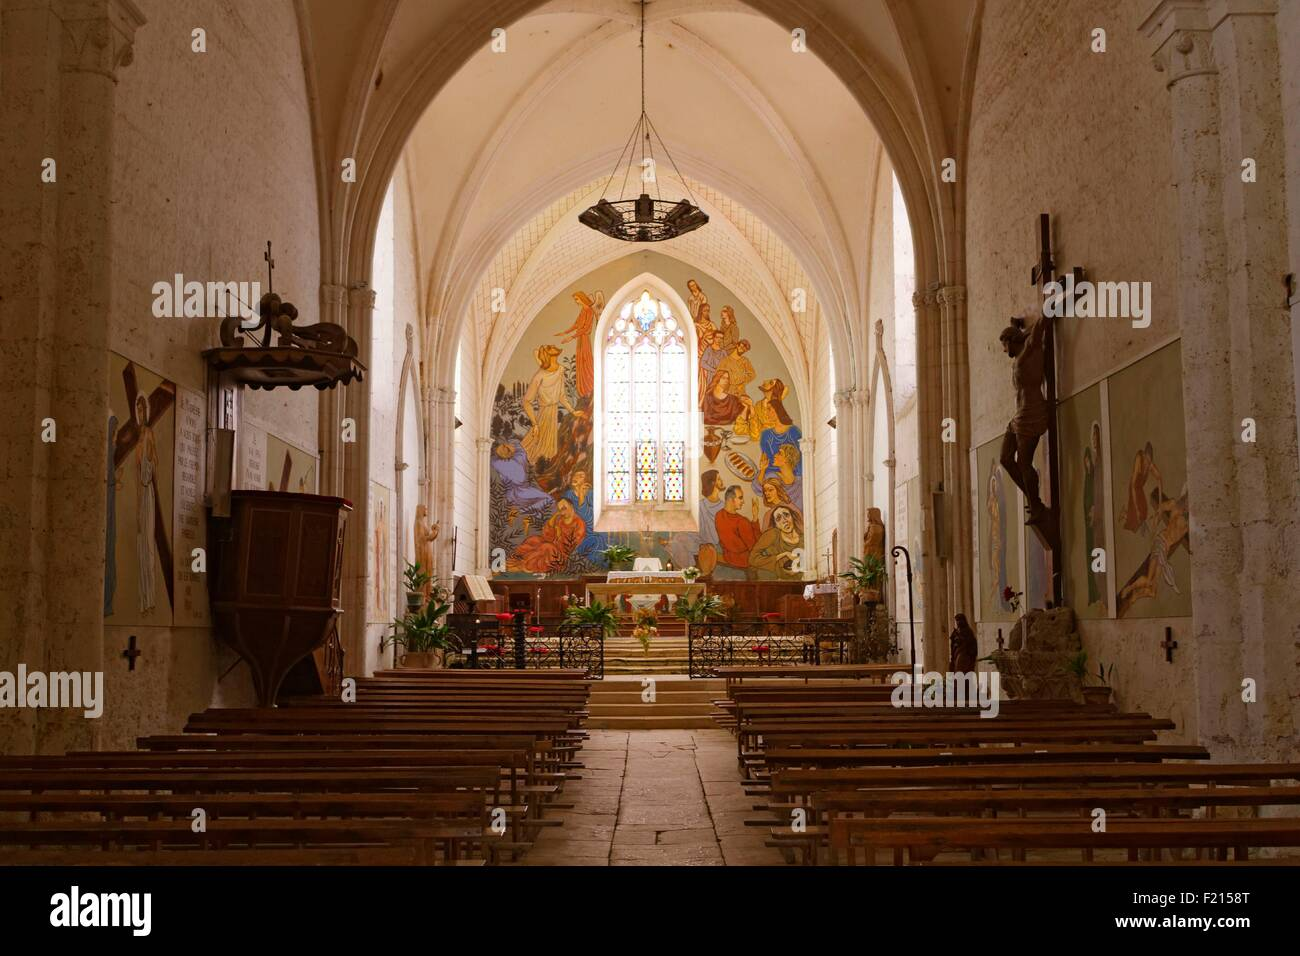 France, Charente, Tusson, Saint Jacques church, consecrated in 1227, rebuilt in the 15th century - Stock Image